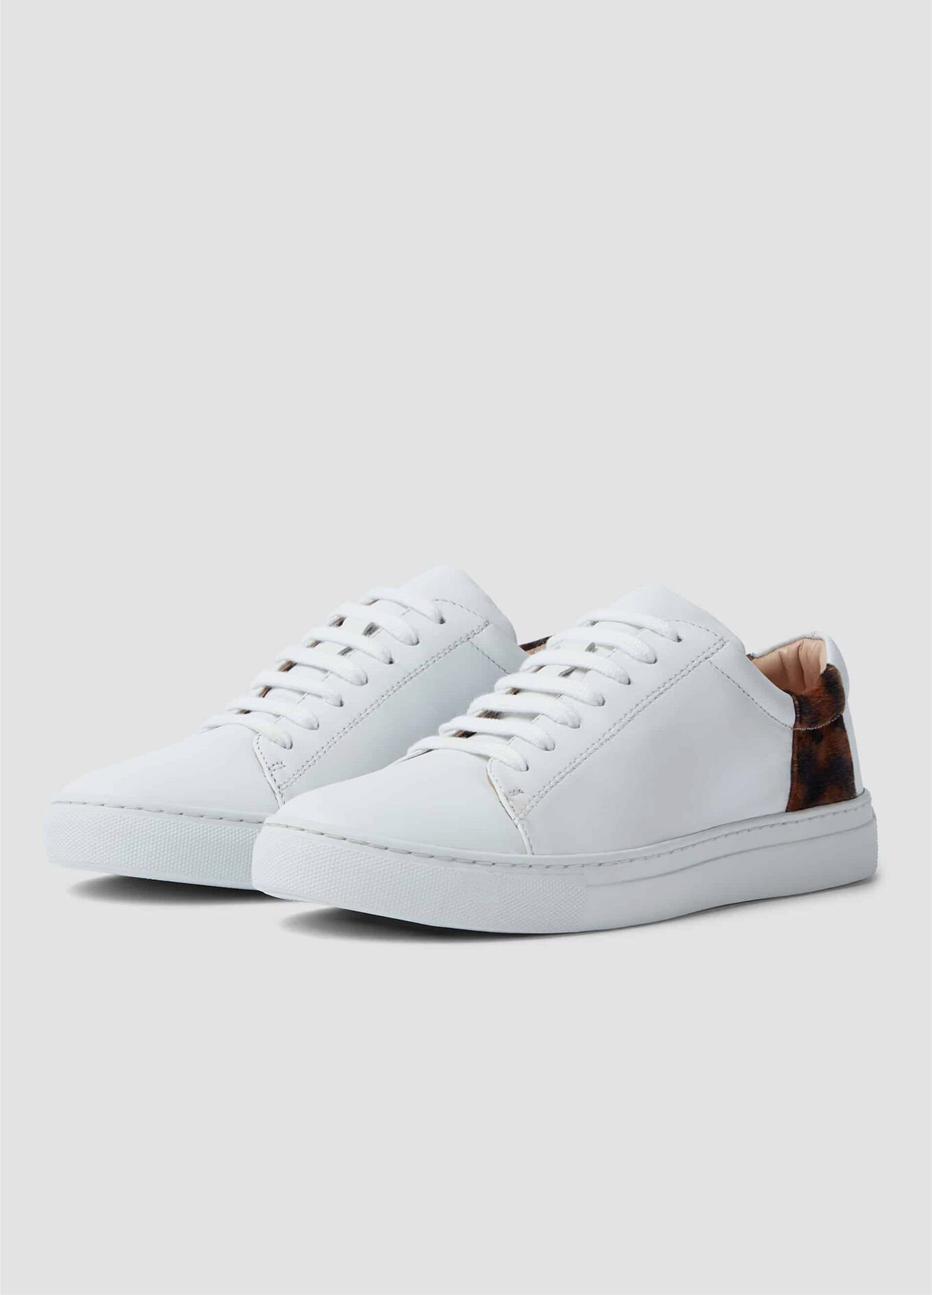 Hobbs leather trainers for women in white.